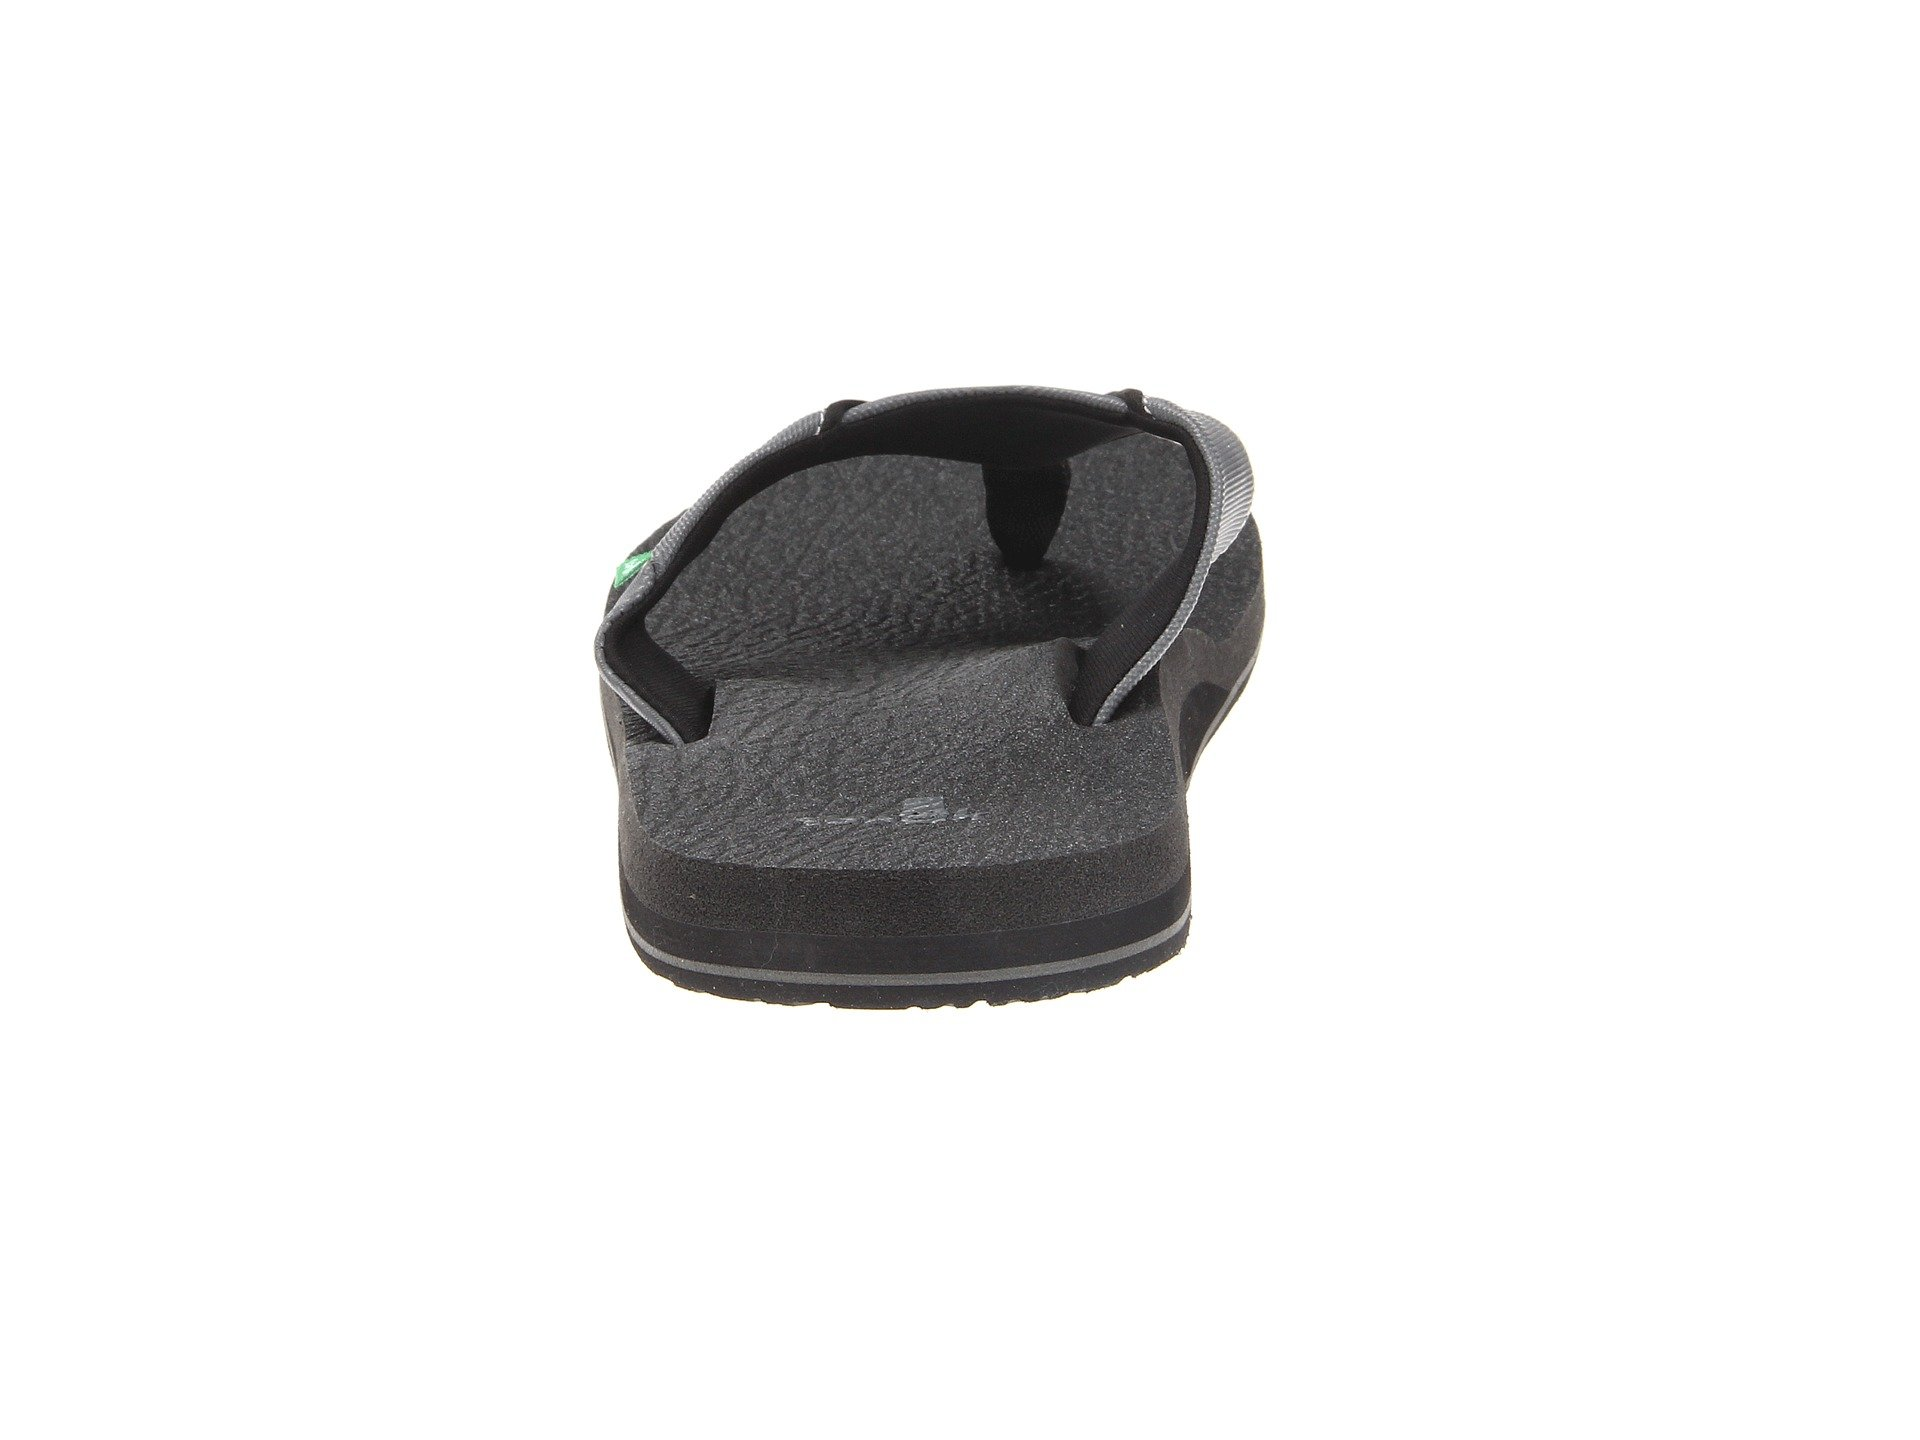 Black Beer Cozy grey Sanuk Black grey Sanuk Beer Cozy qHp7xdW5w7